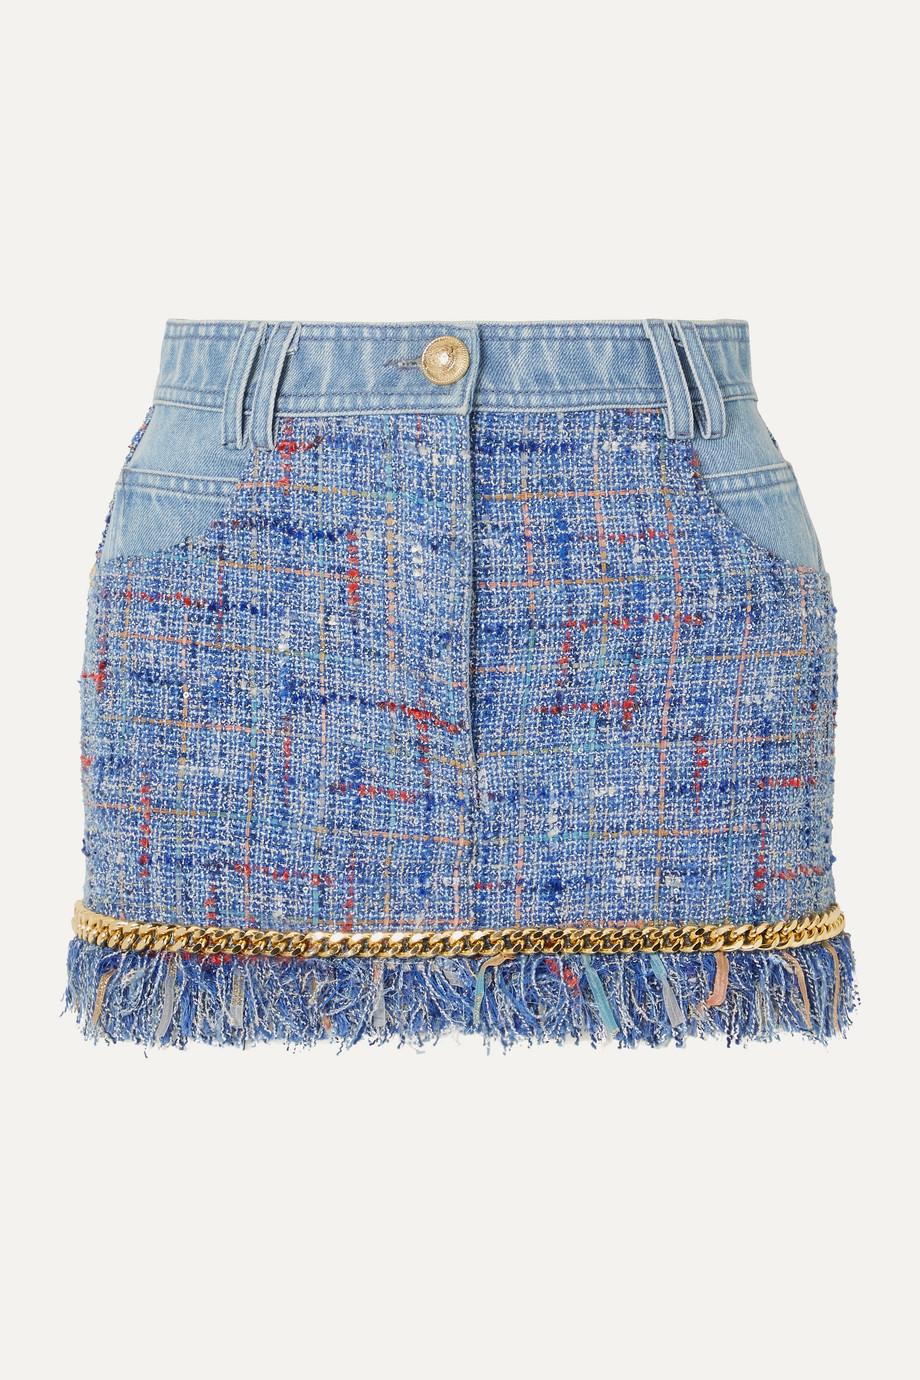 Balmain Chain-embellished cotton-tweed and denim mini skirt